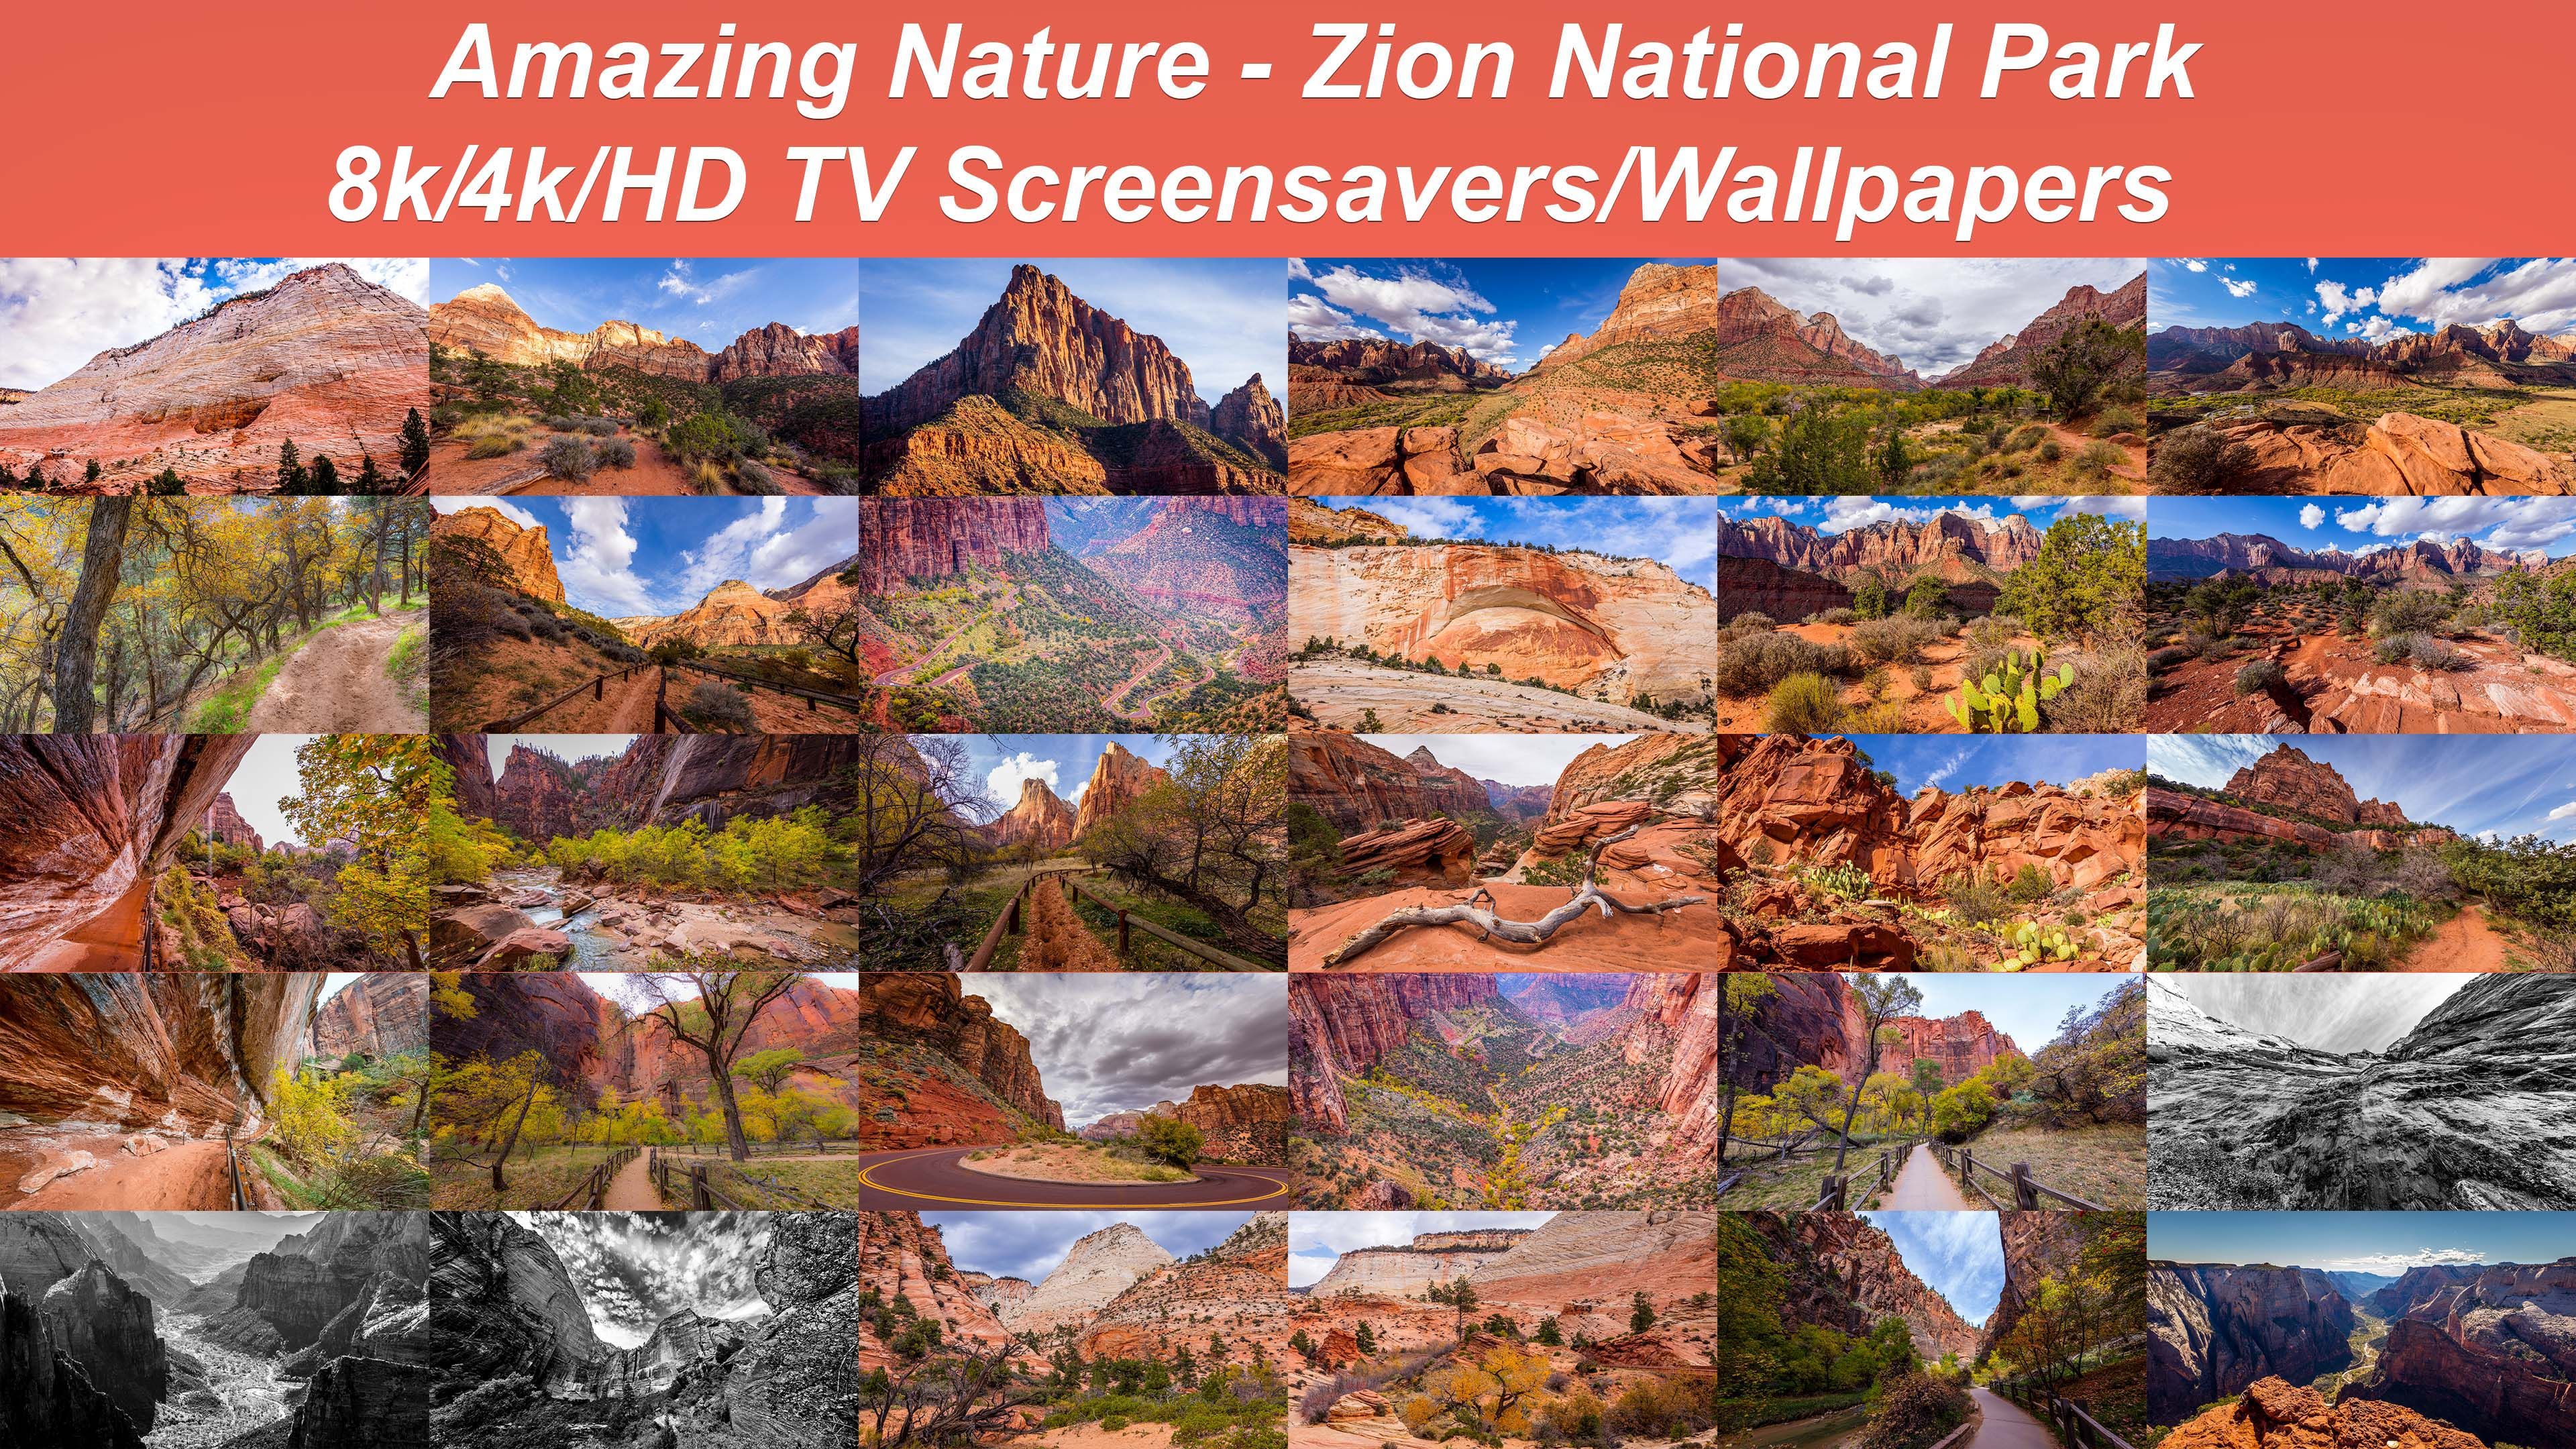 Amazing Nature Zion National Park 8k4khd Tv Screensaverswallpapers